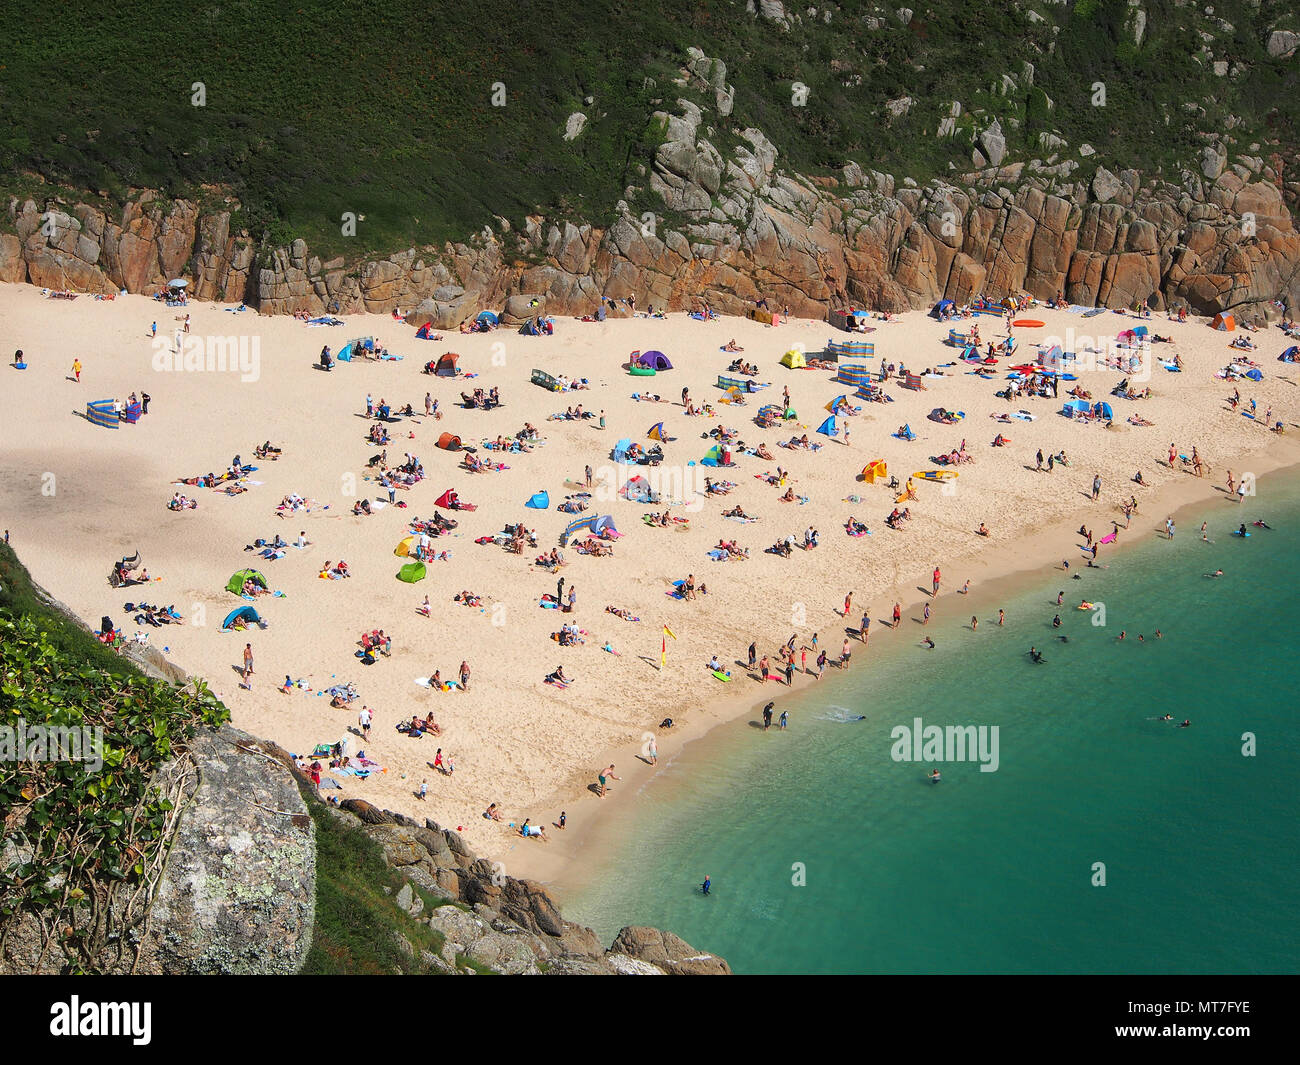 Beach at Pothcurno Bay / Cove in Cornwall, England, UK, showing the beach on a summer day. Aerial shot of holidaymakers sunbathing and swimming. Stock Photo